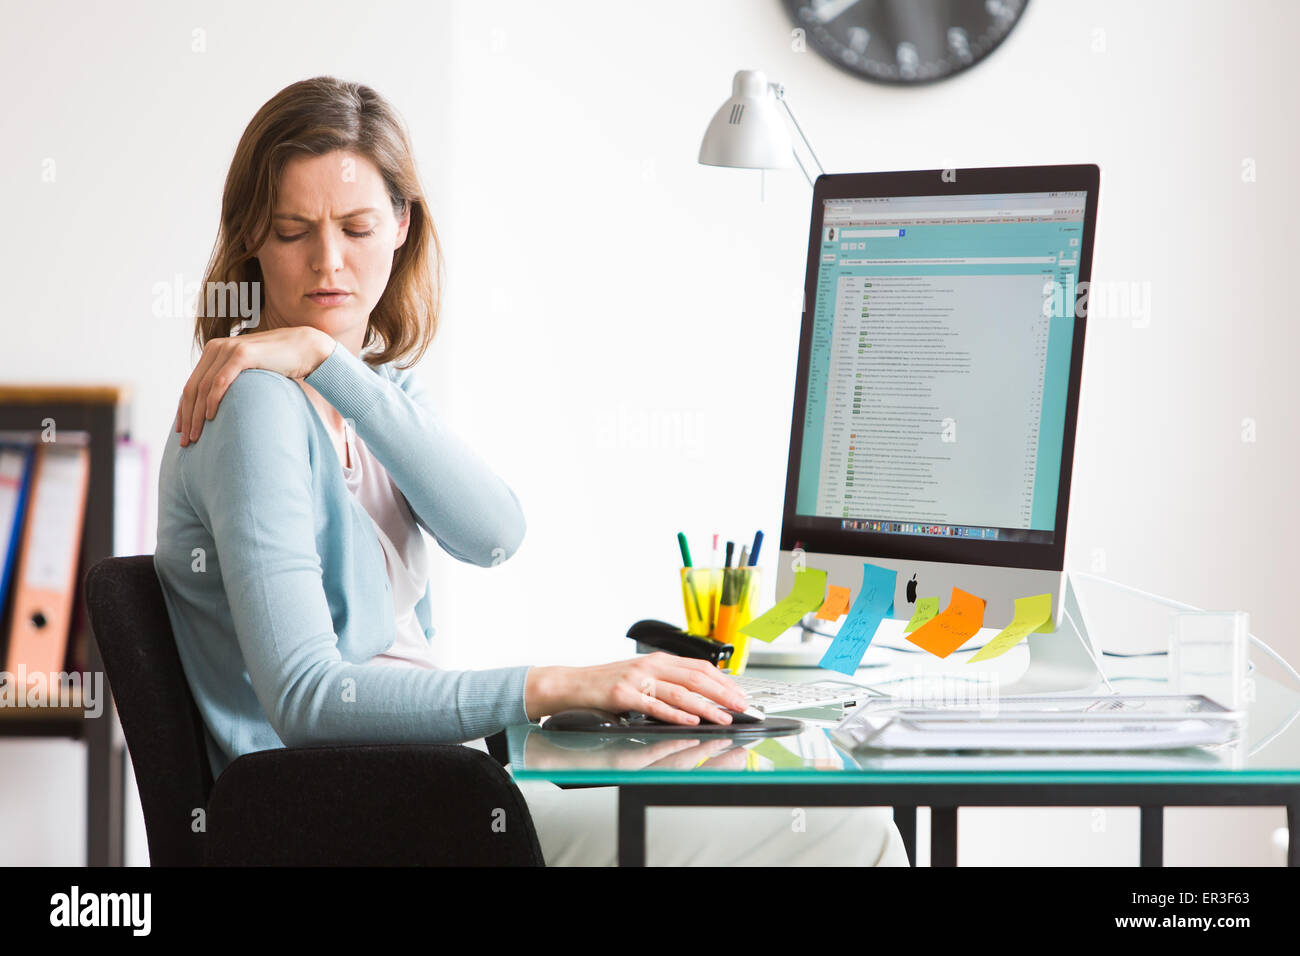 Woman at work suffering from shoulder pain. - Stock Image